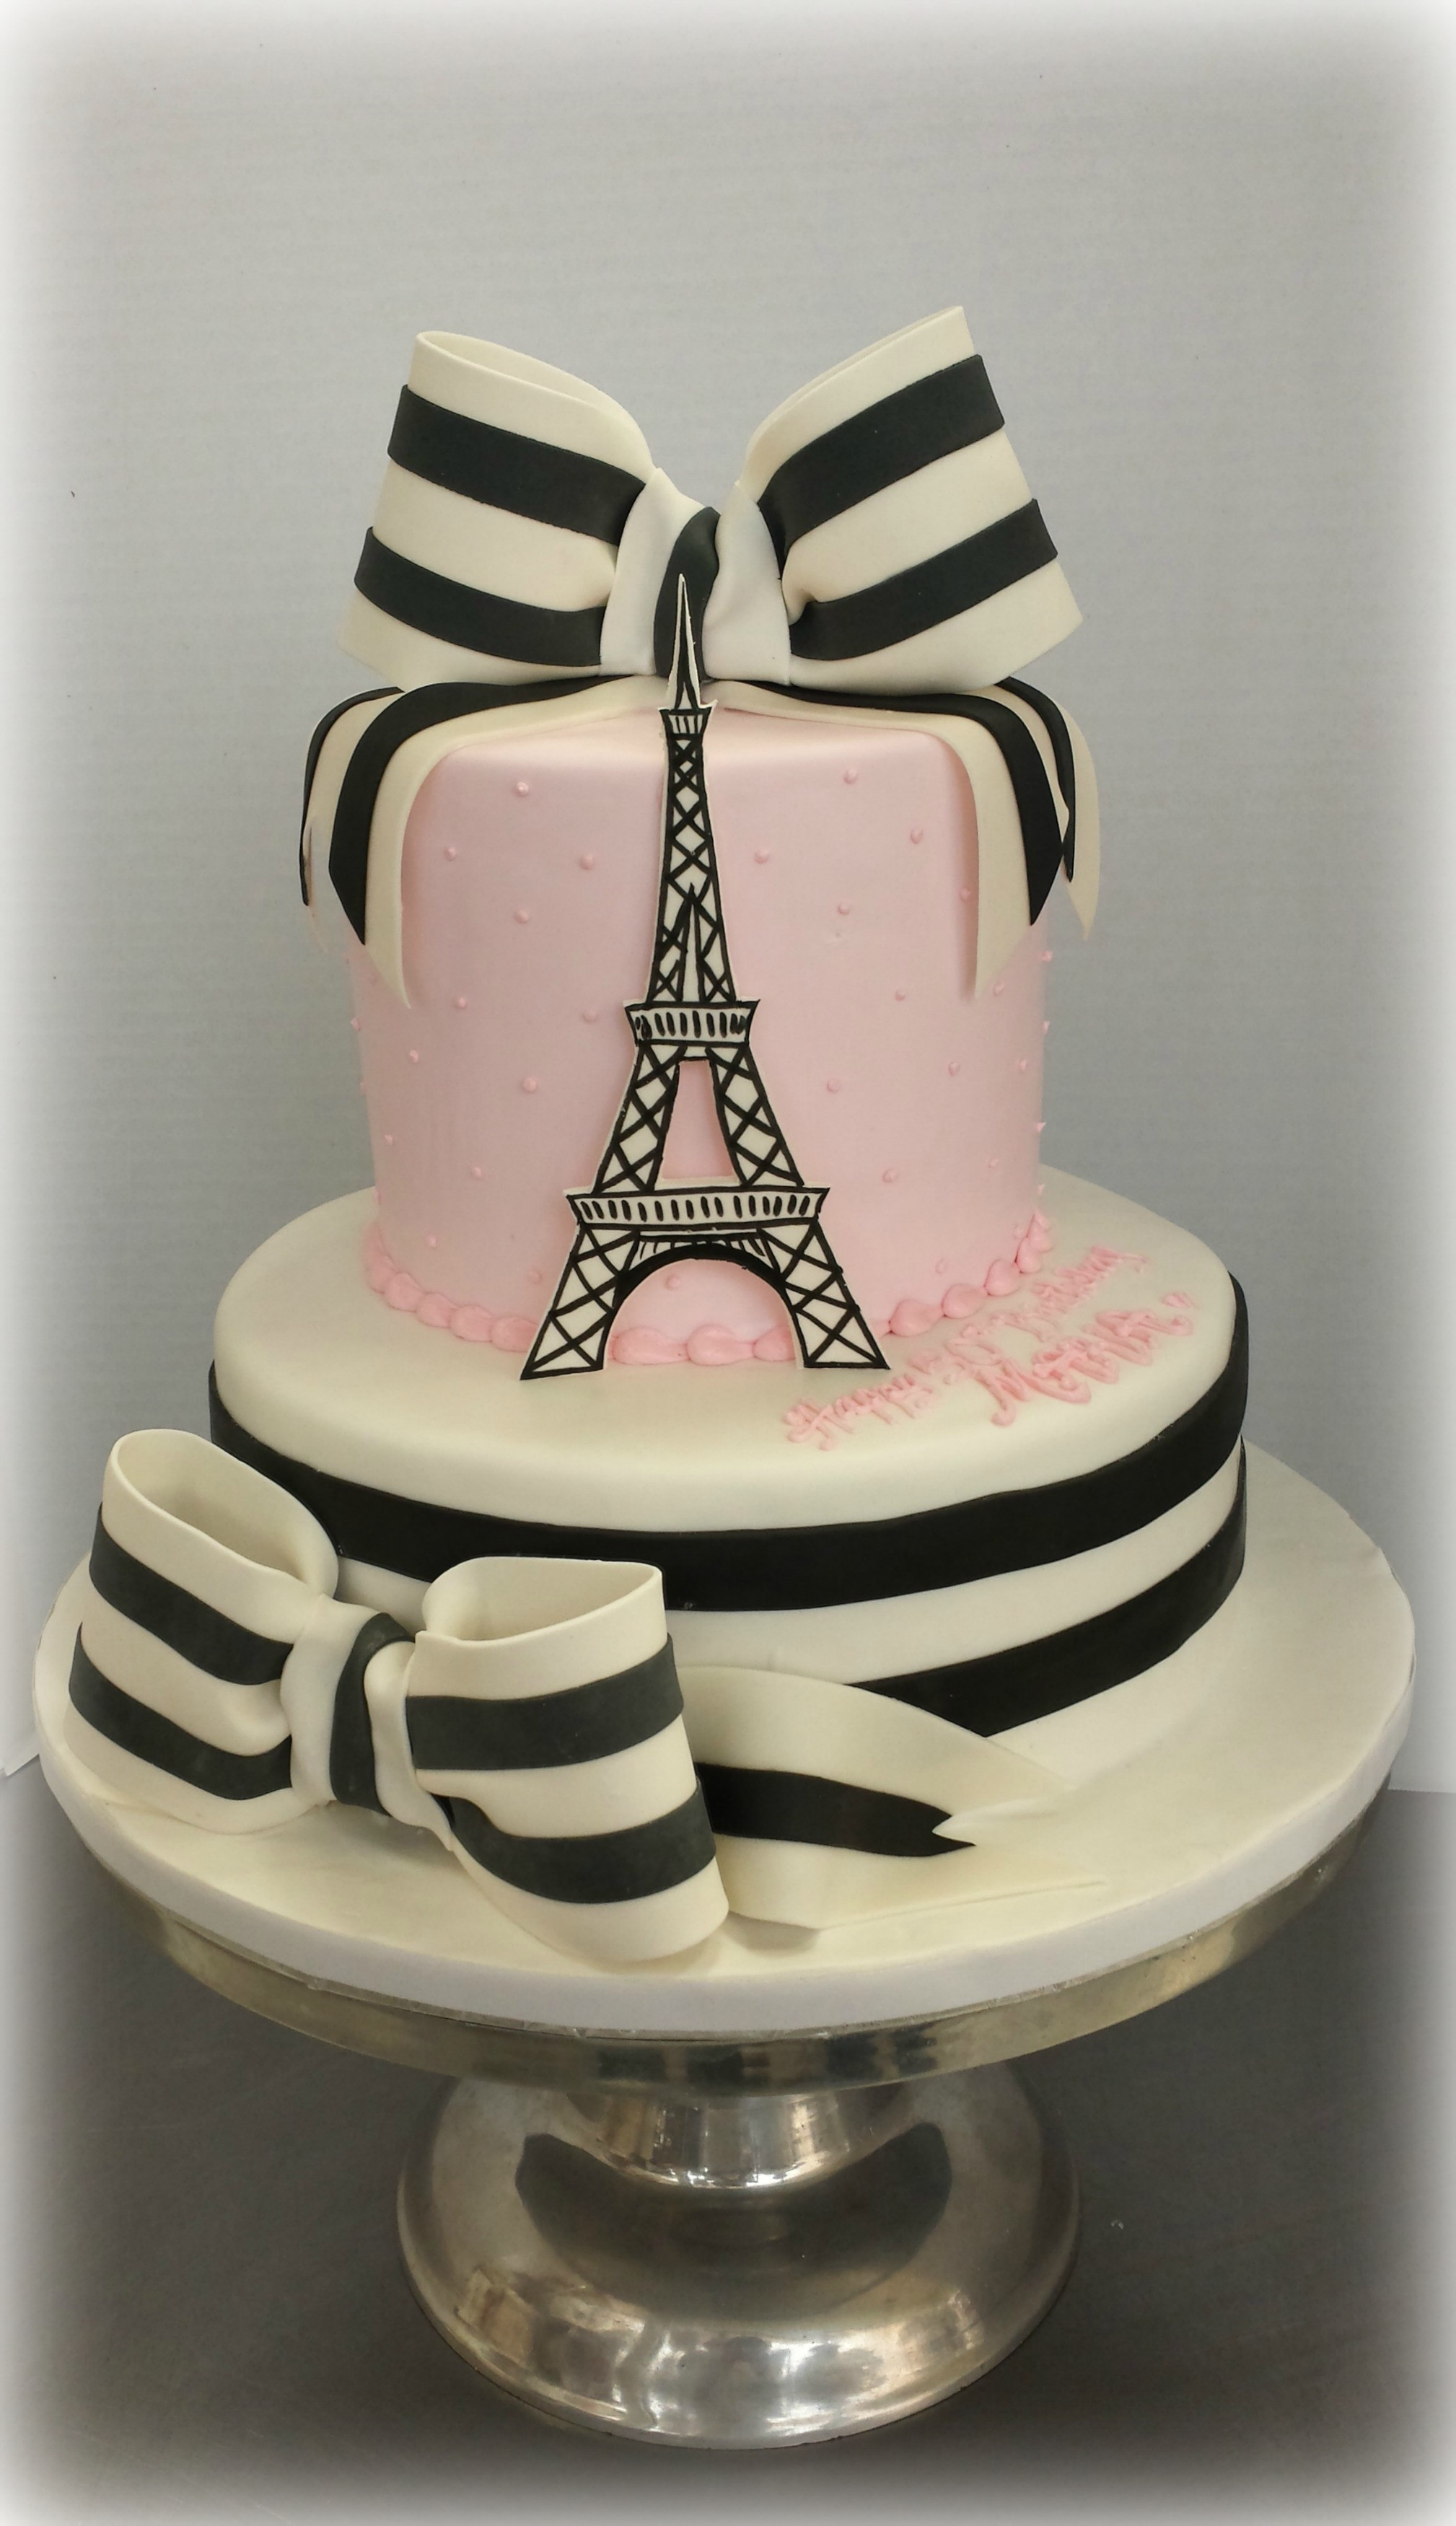 Best ideas about Paris Birthday Cake . Save or Pin Paris Flair for Milestone Birthday Now.